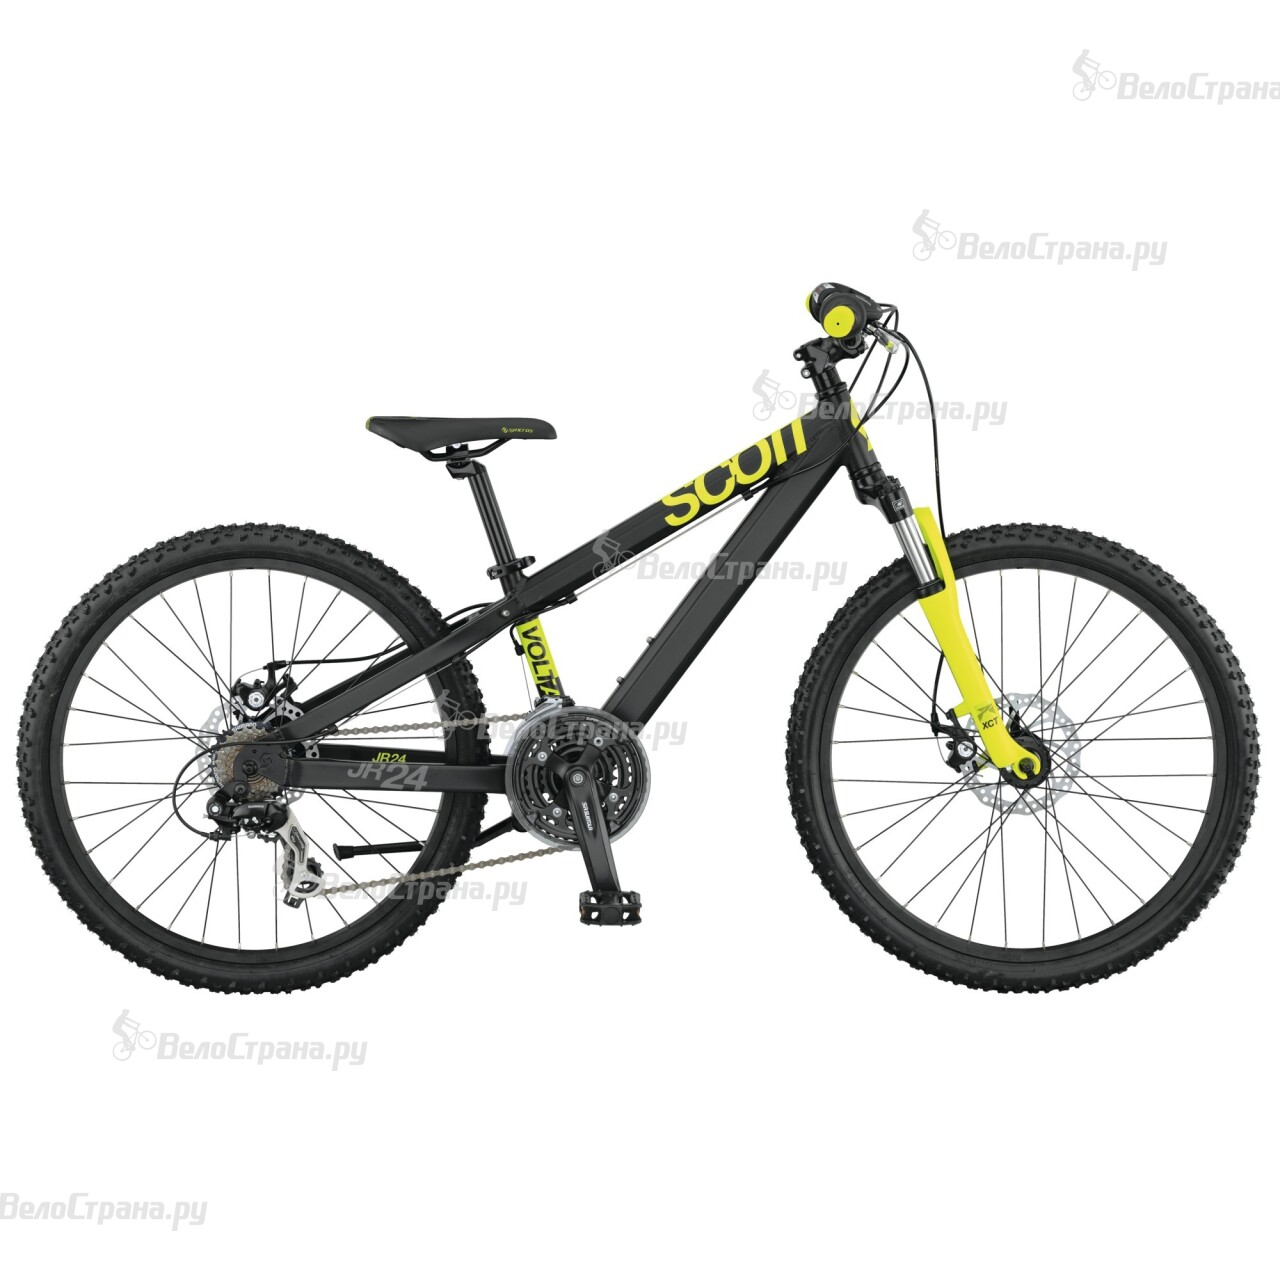 Велосипед Scott Voltage Junior 24 Disc (2015) велосипед scott voltage jr 24 24 2016